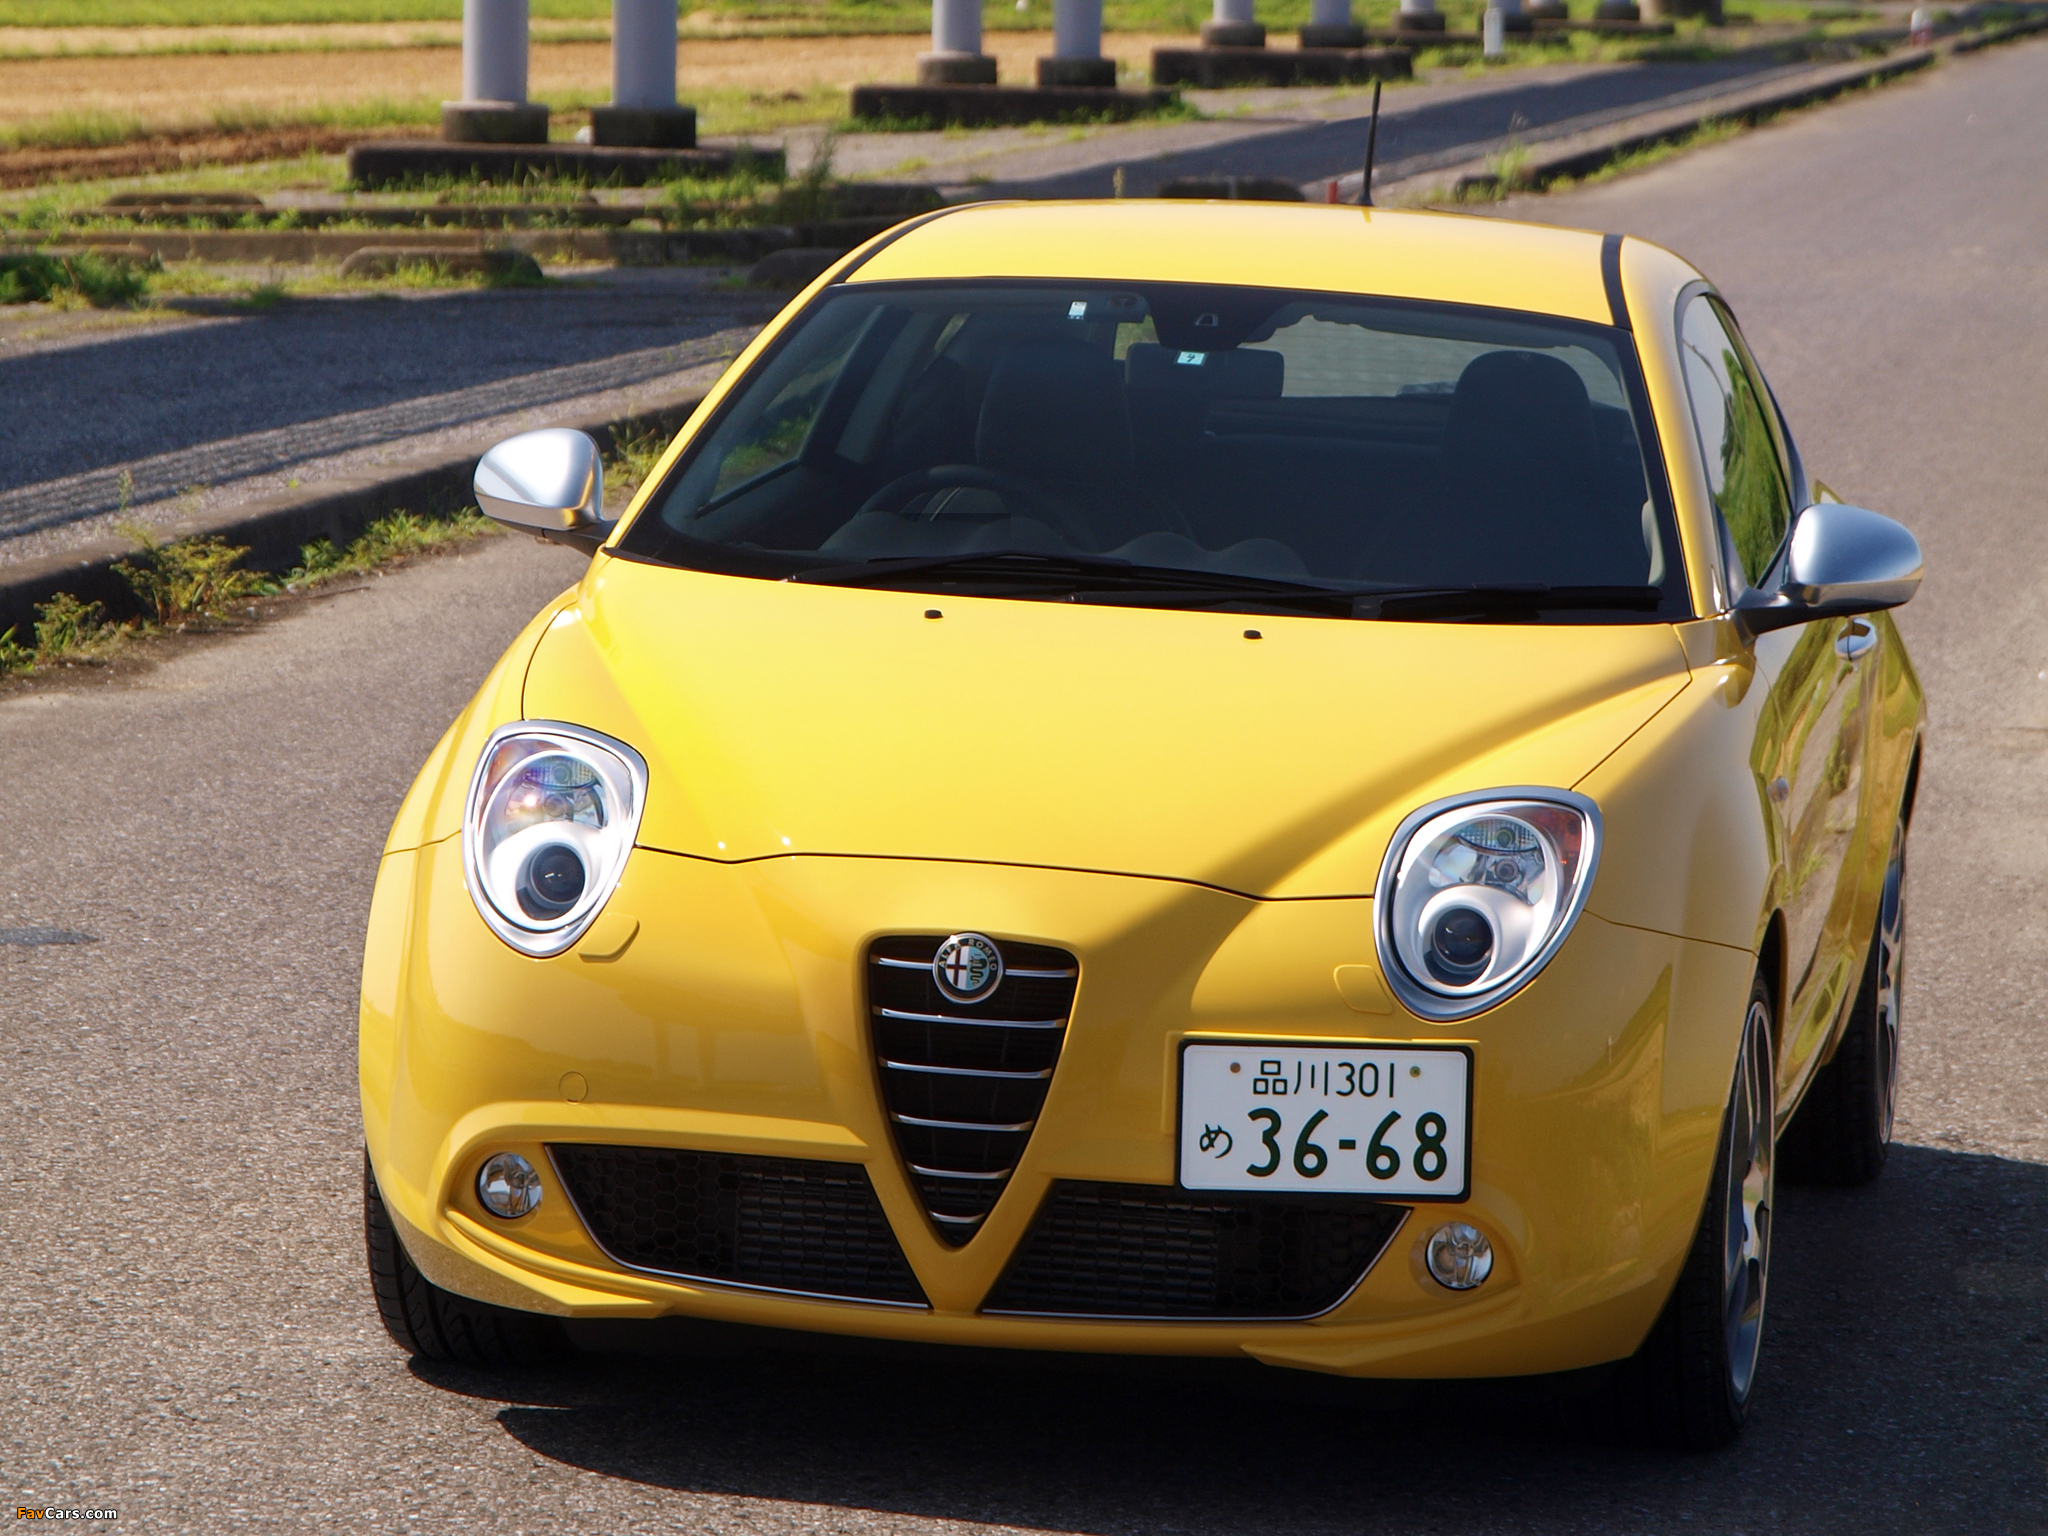 photos of alfa romeo mito imola 955 2009 2048x1536. Black Bedroom Furniture Sets. Home Design Ideas